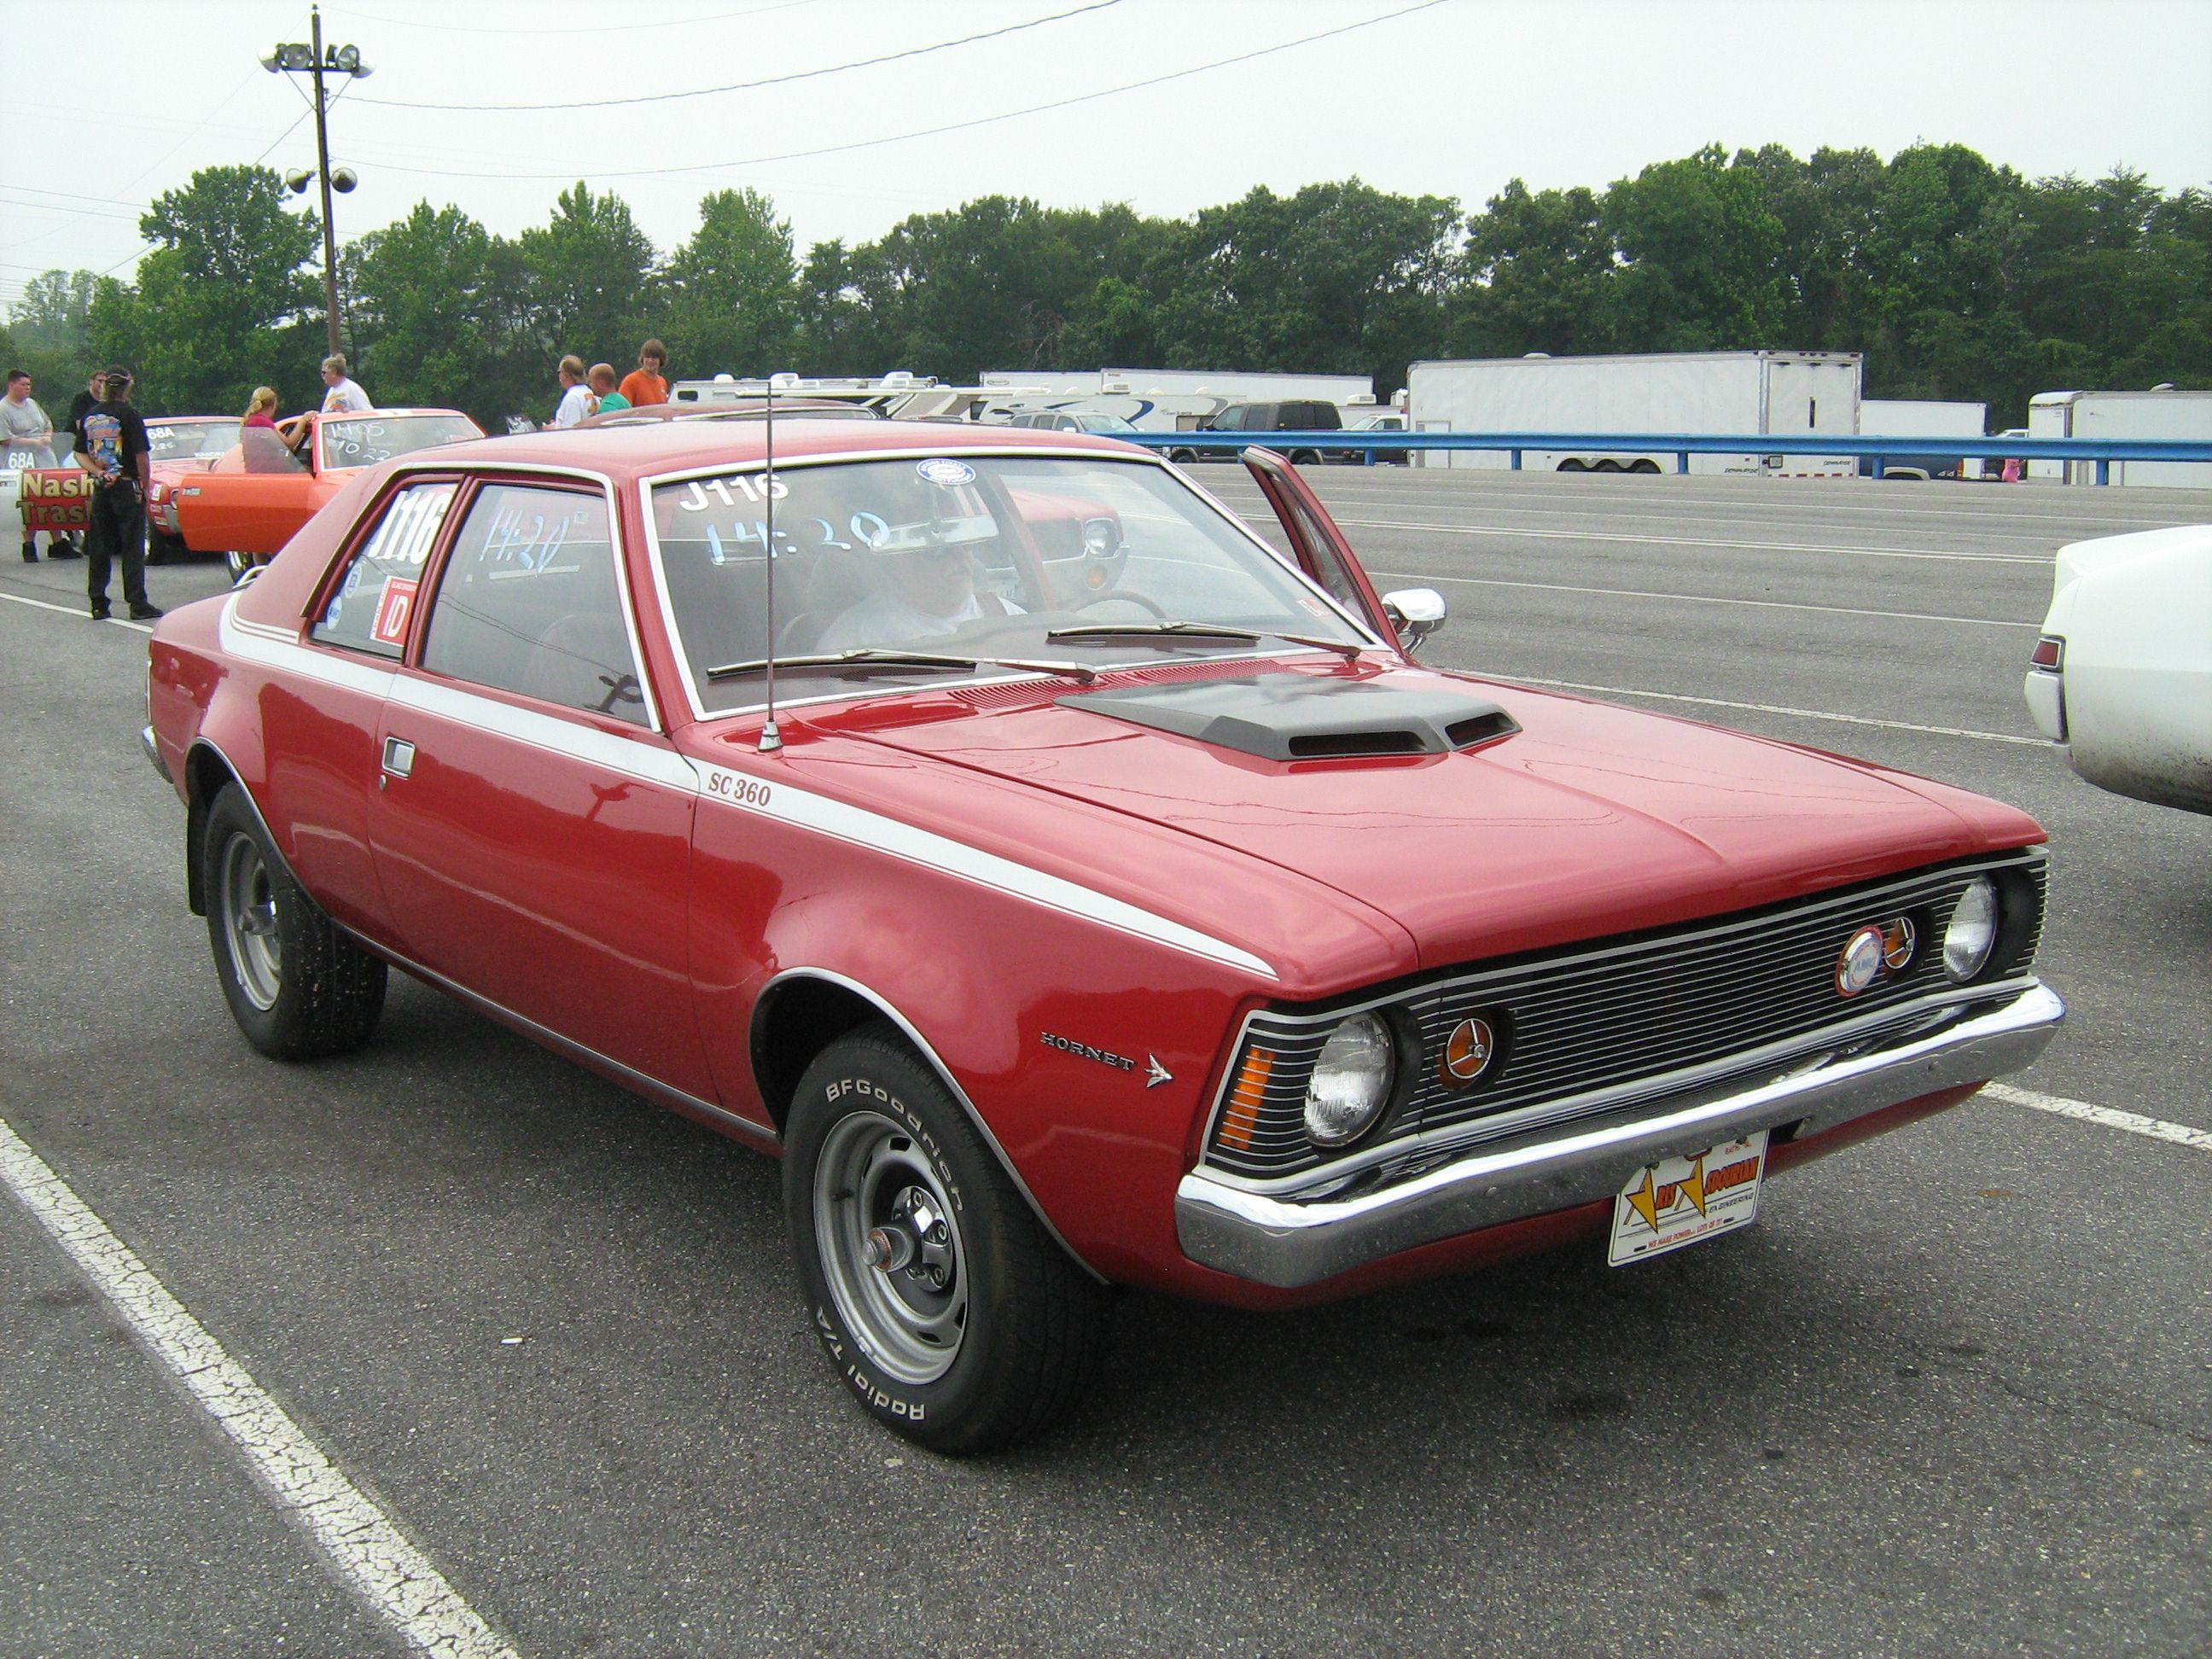 1971 Amc Hornet Sc360 Red Md Da Jpg 2592 1944 Amc Gremlin Amc